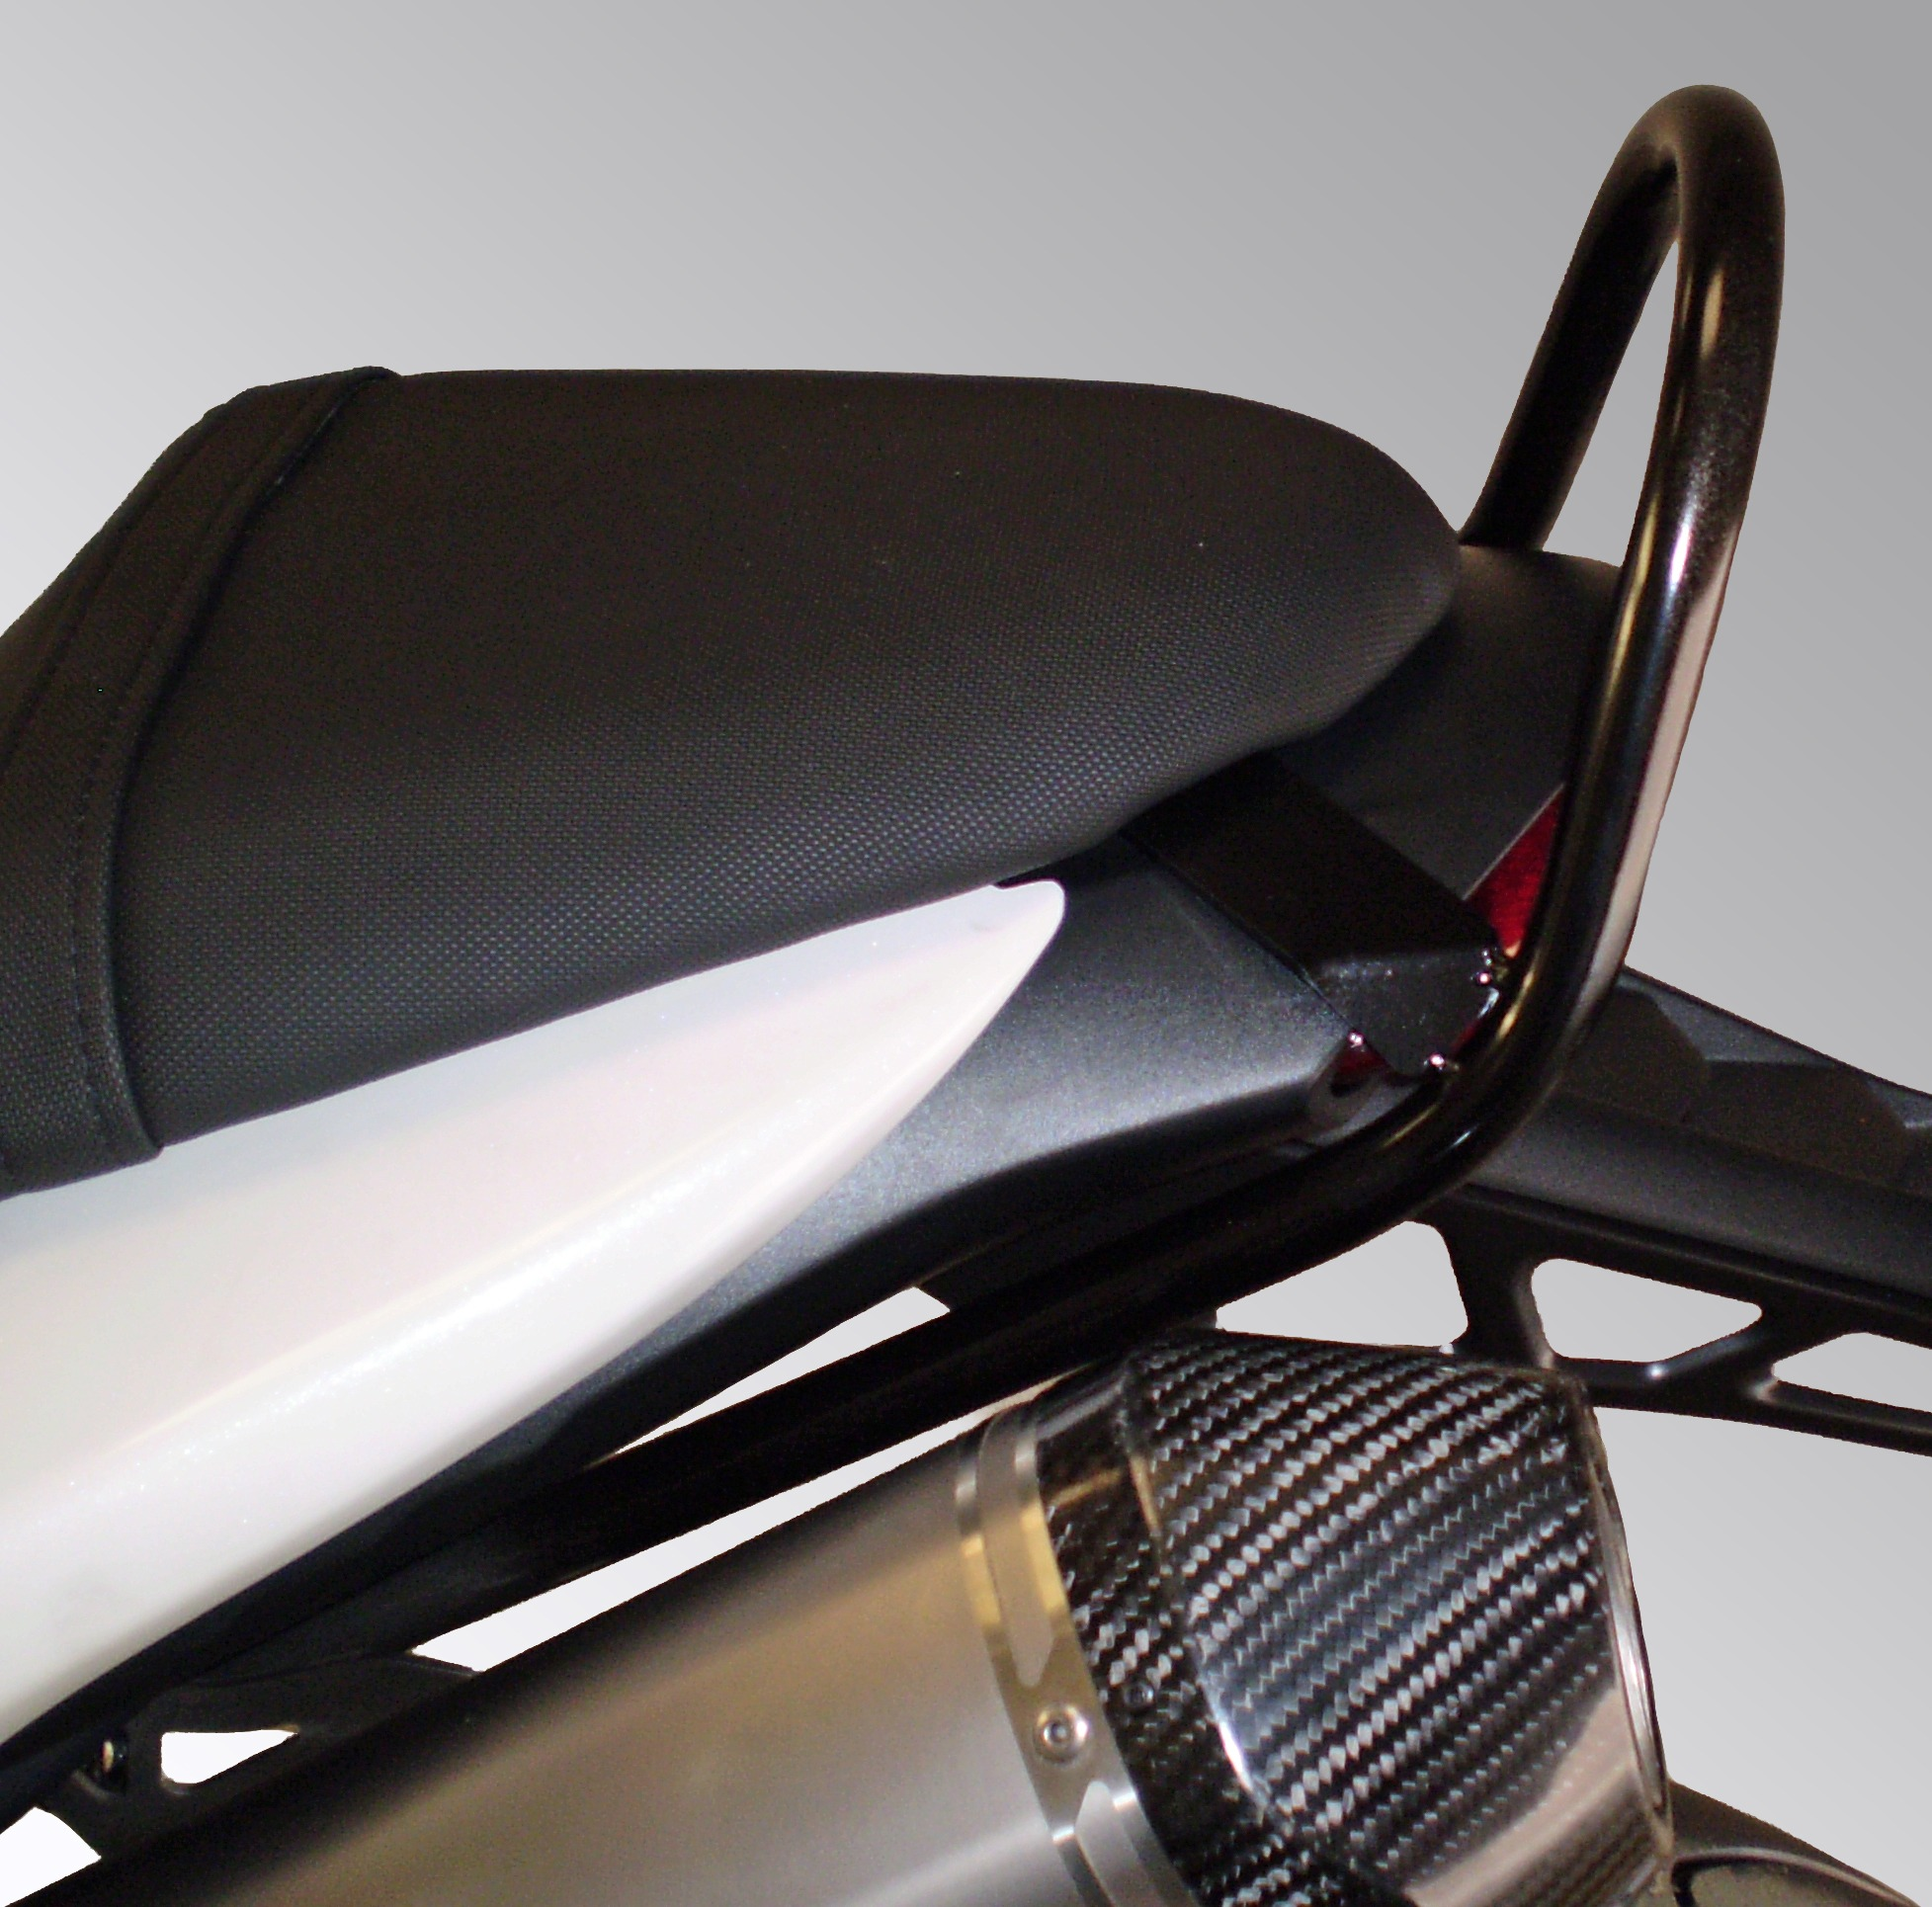 Triumph Speed Triple 1050 2011/2012 Pillion Grab Rail In Black